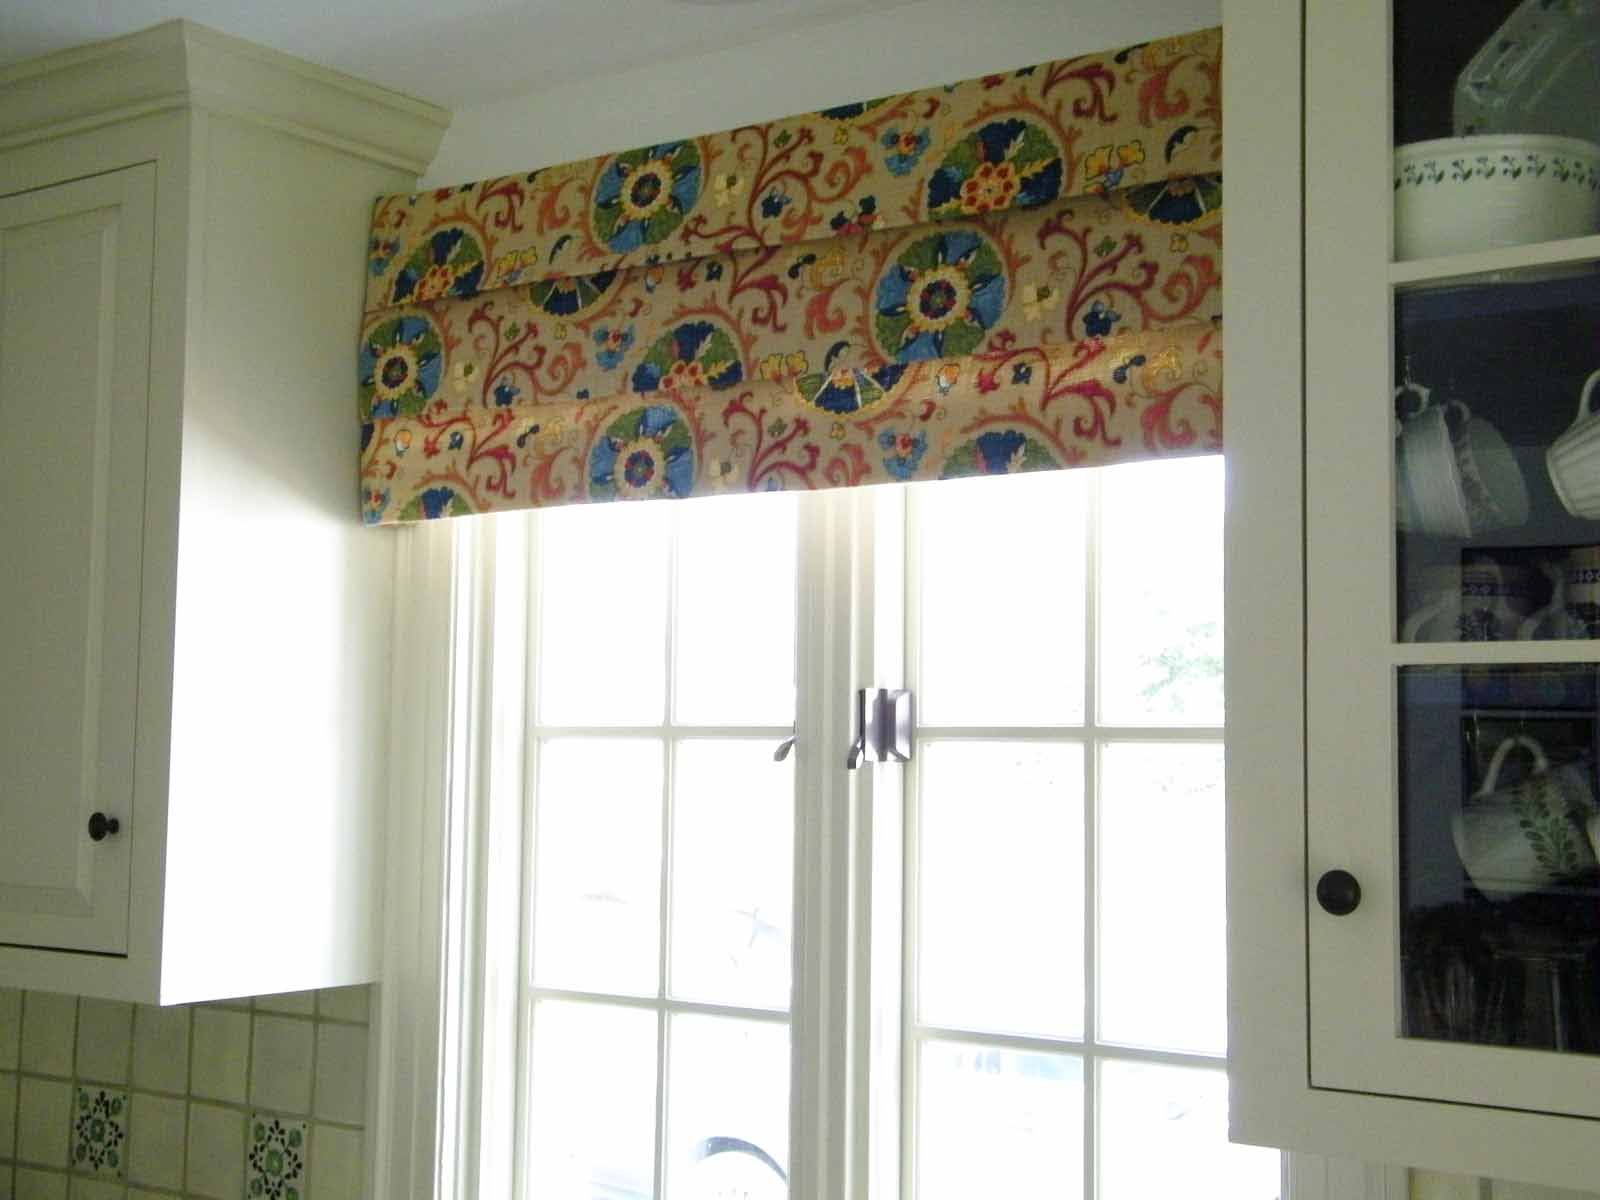 Awe Inspiring Handmade Over Valance As Frosted Patio Door Window Treatments With White Panels Frames Decorate In Midcentury Interior Decoration Ideas